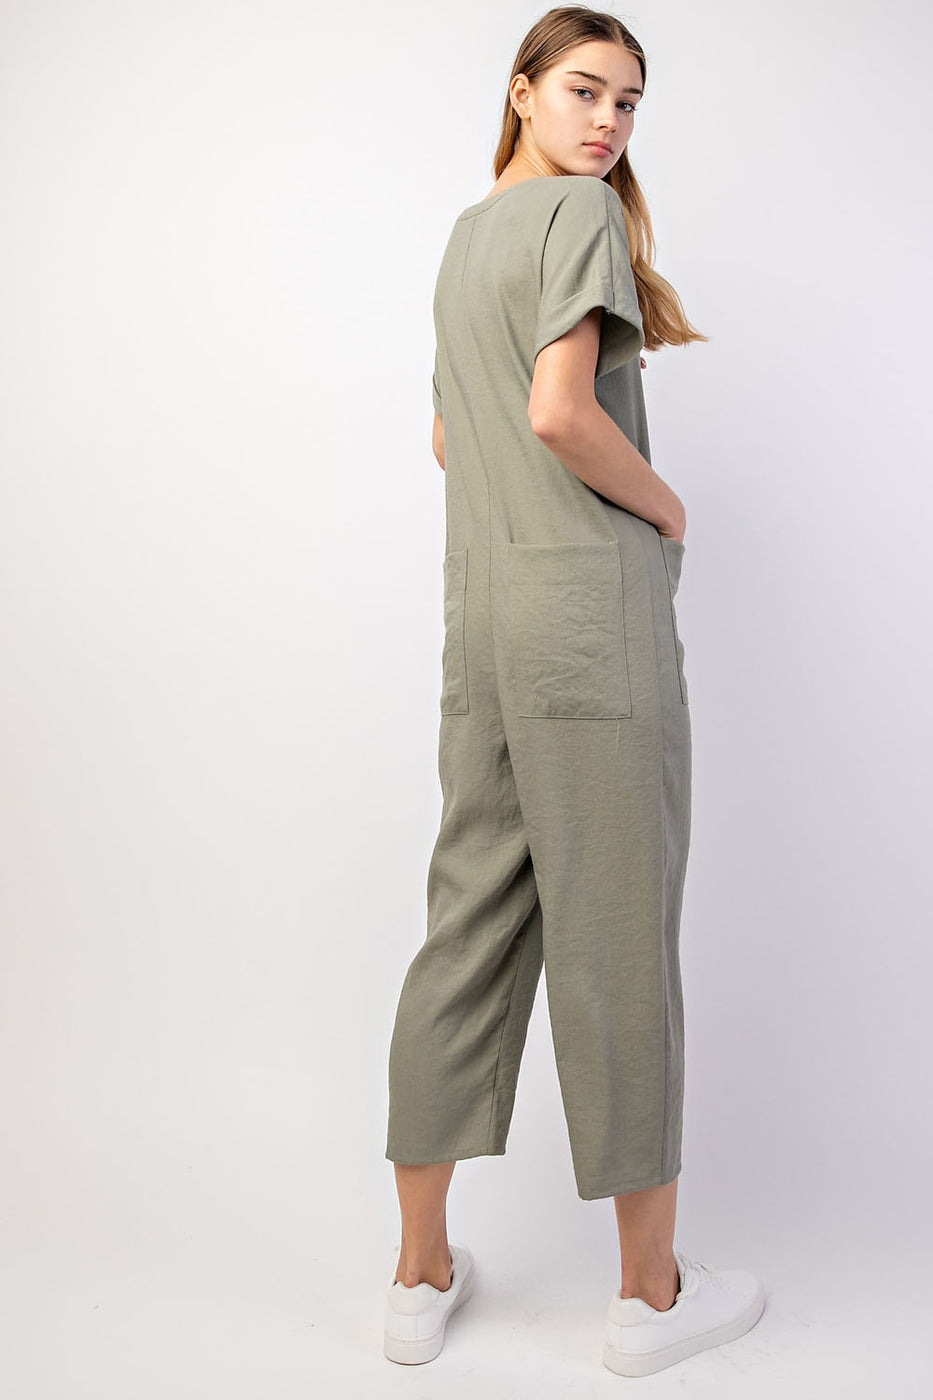 Molly Short Sleeve V-Neck Jumpsuit With Pockets And Button Closure Siin Bees